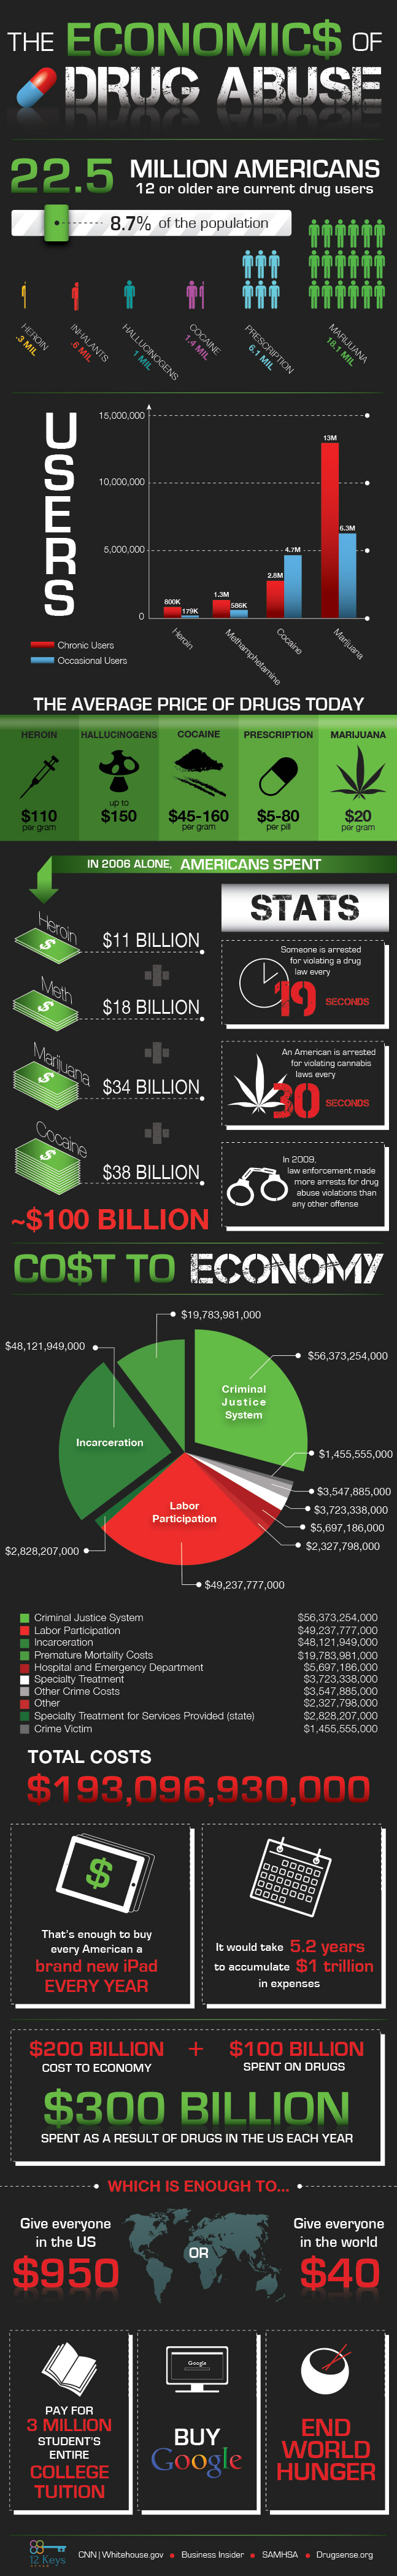 the-economics-of-drug-abuse-infographic